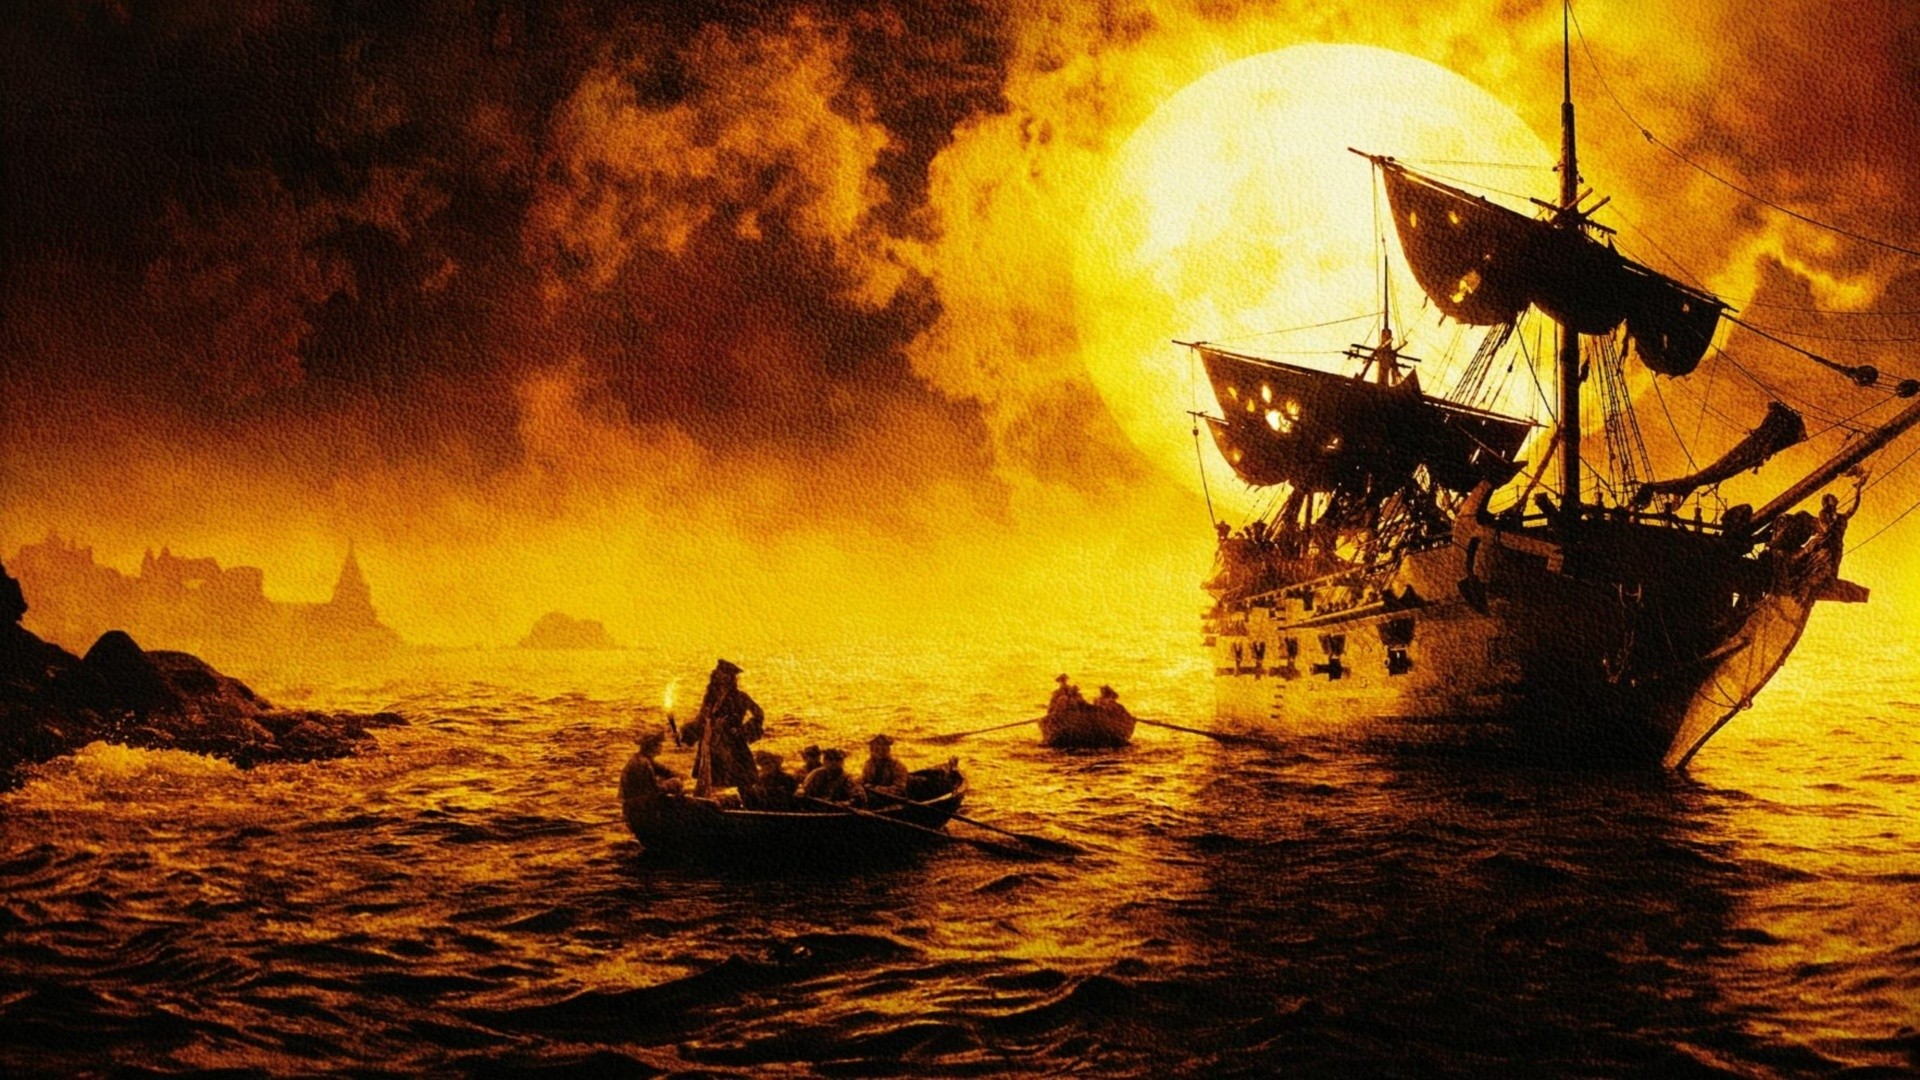 Pirates of the caribbean curse black pearl g wallpaper background